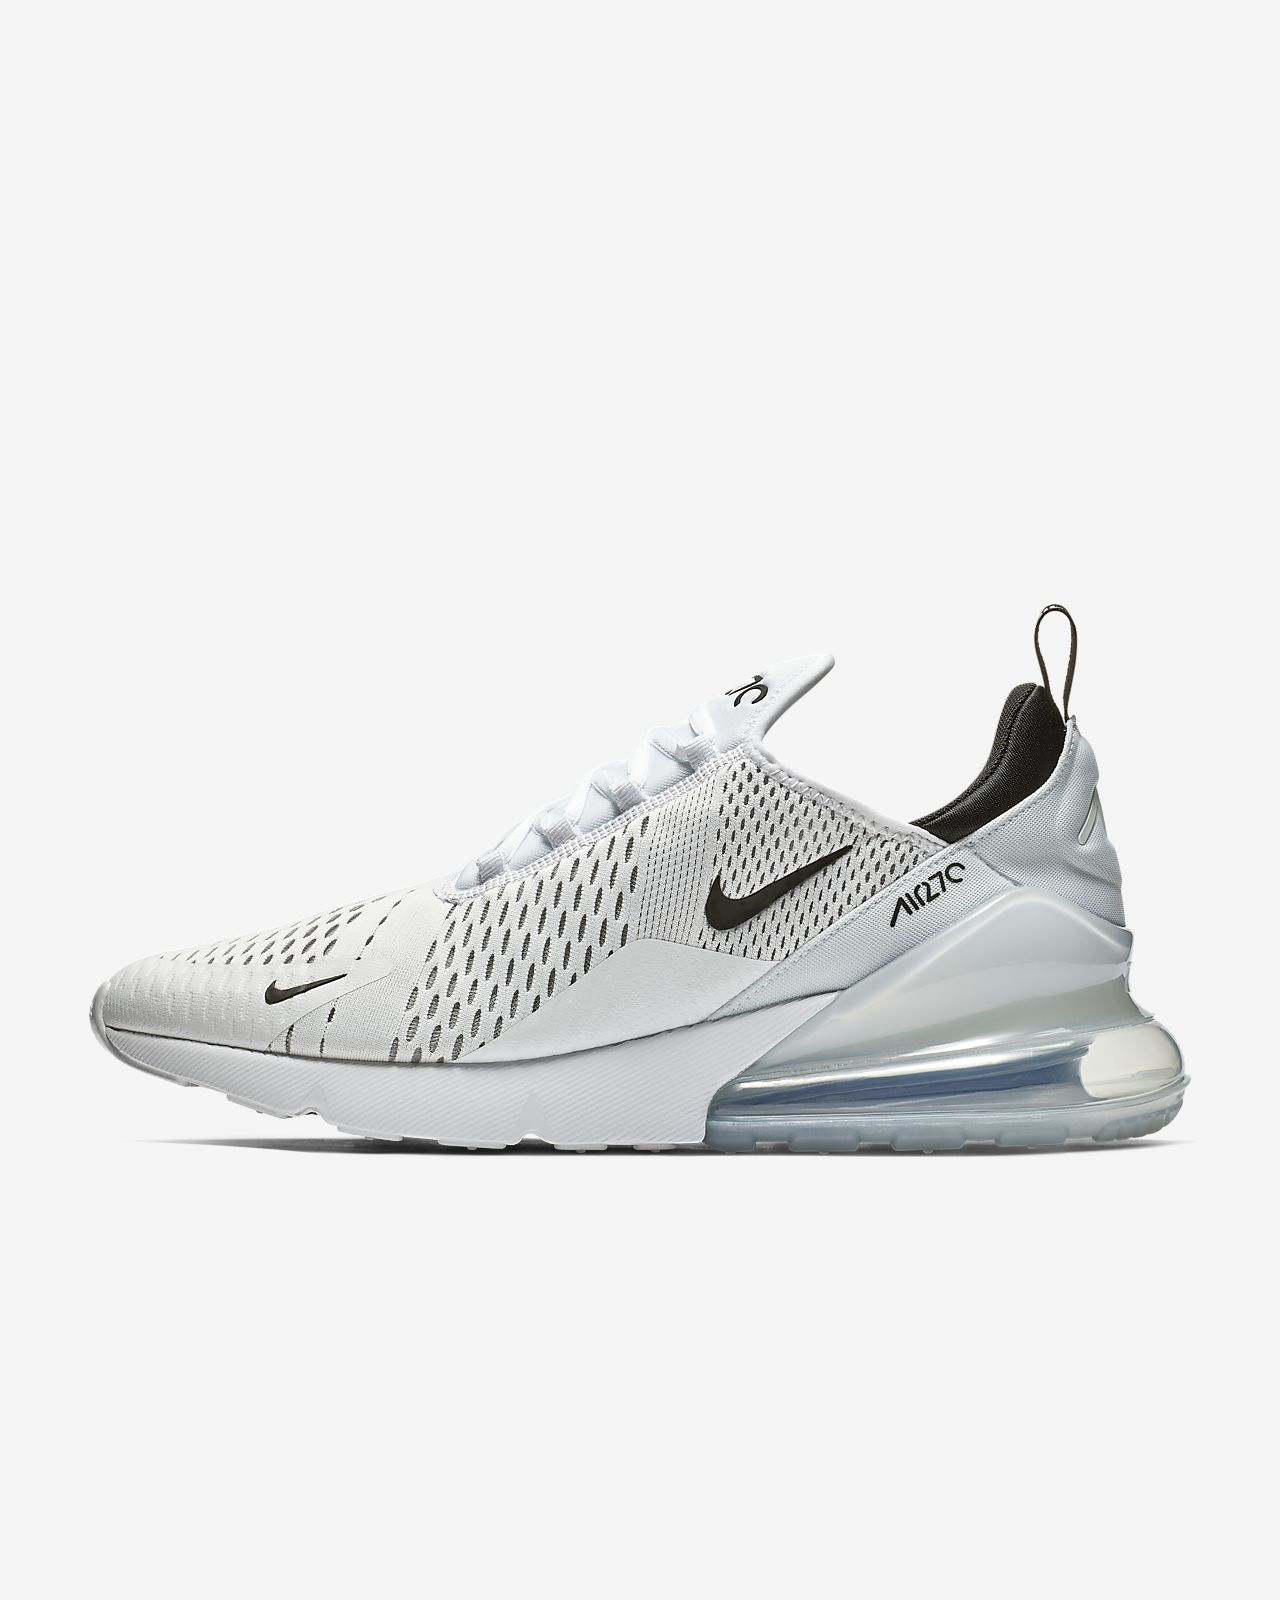 reputable site 77fa2 622fd ... Nike Air Max 270 Mens Shoe